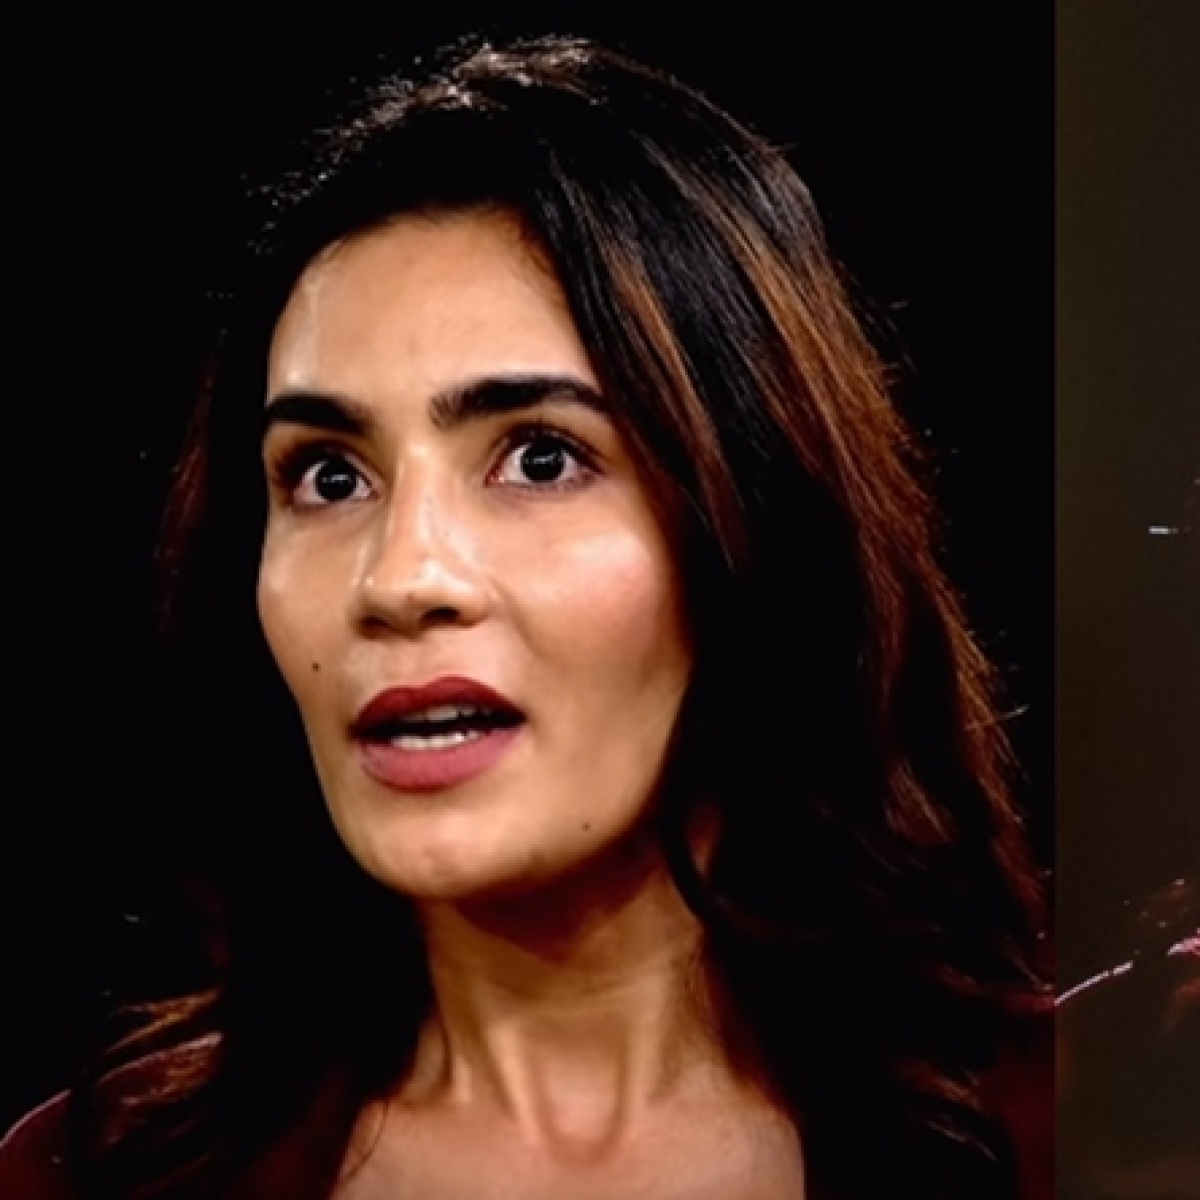 Twitter lauds 'Soni' actress Geetika Vidya for speaking on Unnao and CAA at newcomer's roundtable